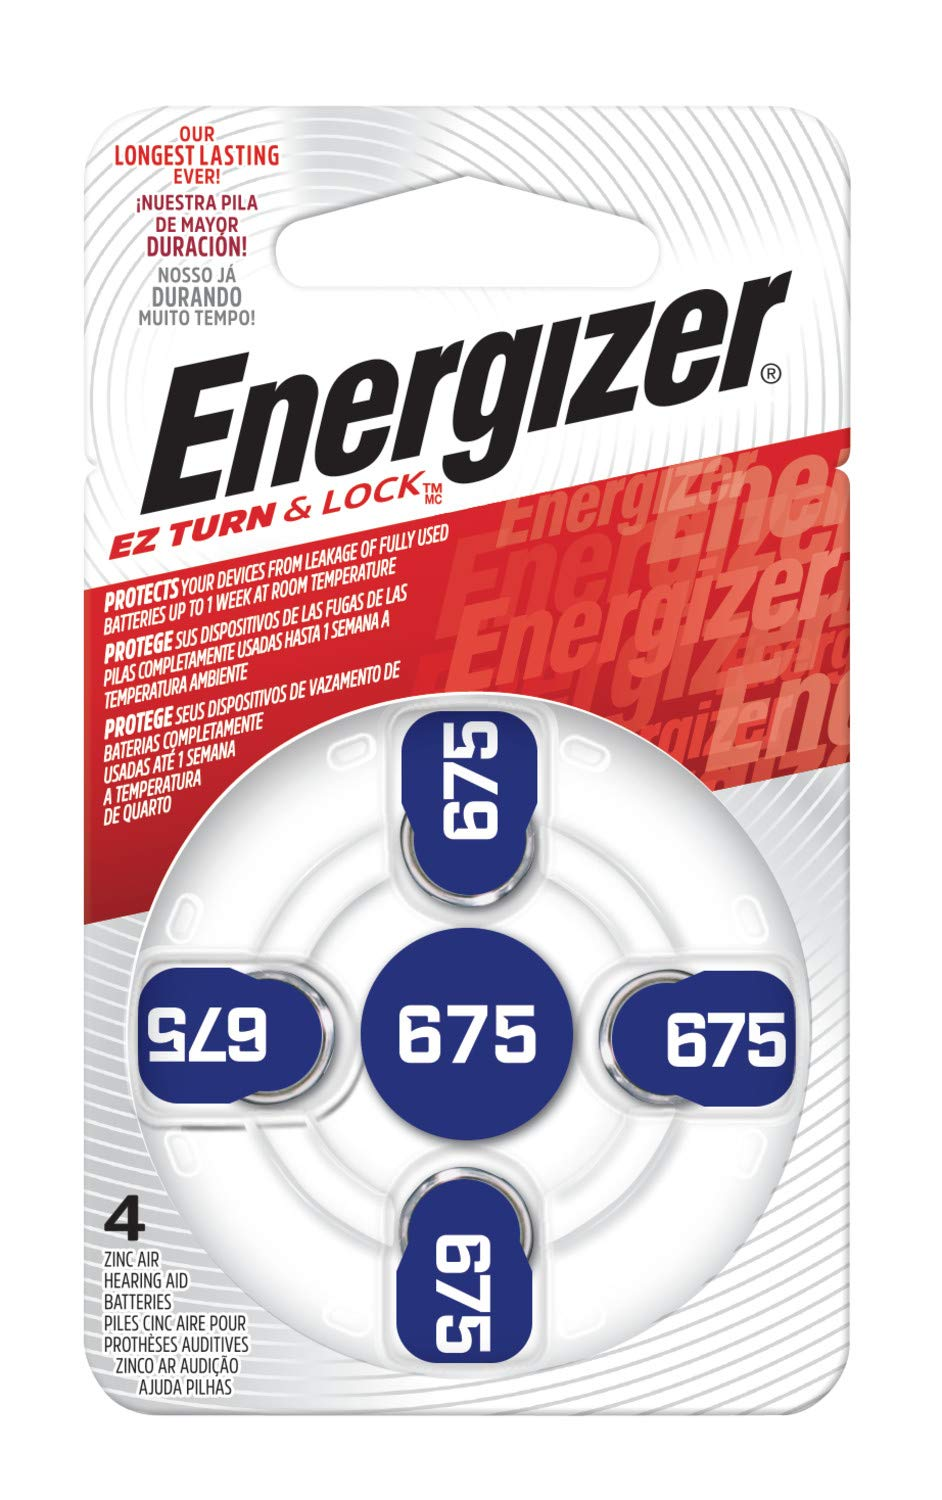 Energizer EZ Turn & Lock 675 Hearing Aid Battery, 96-Count by Energizer